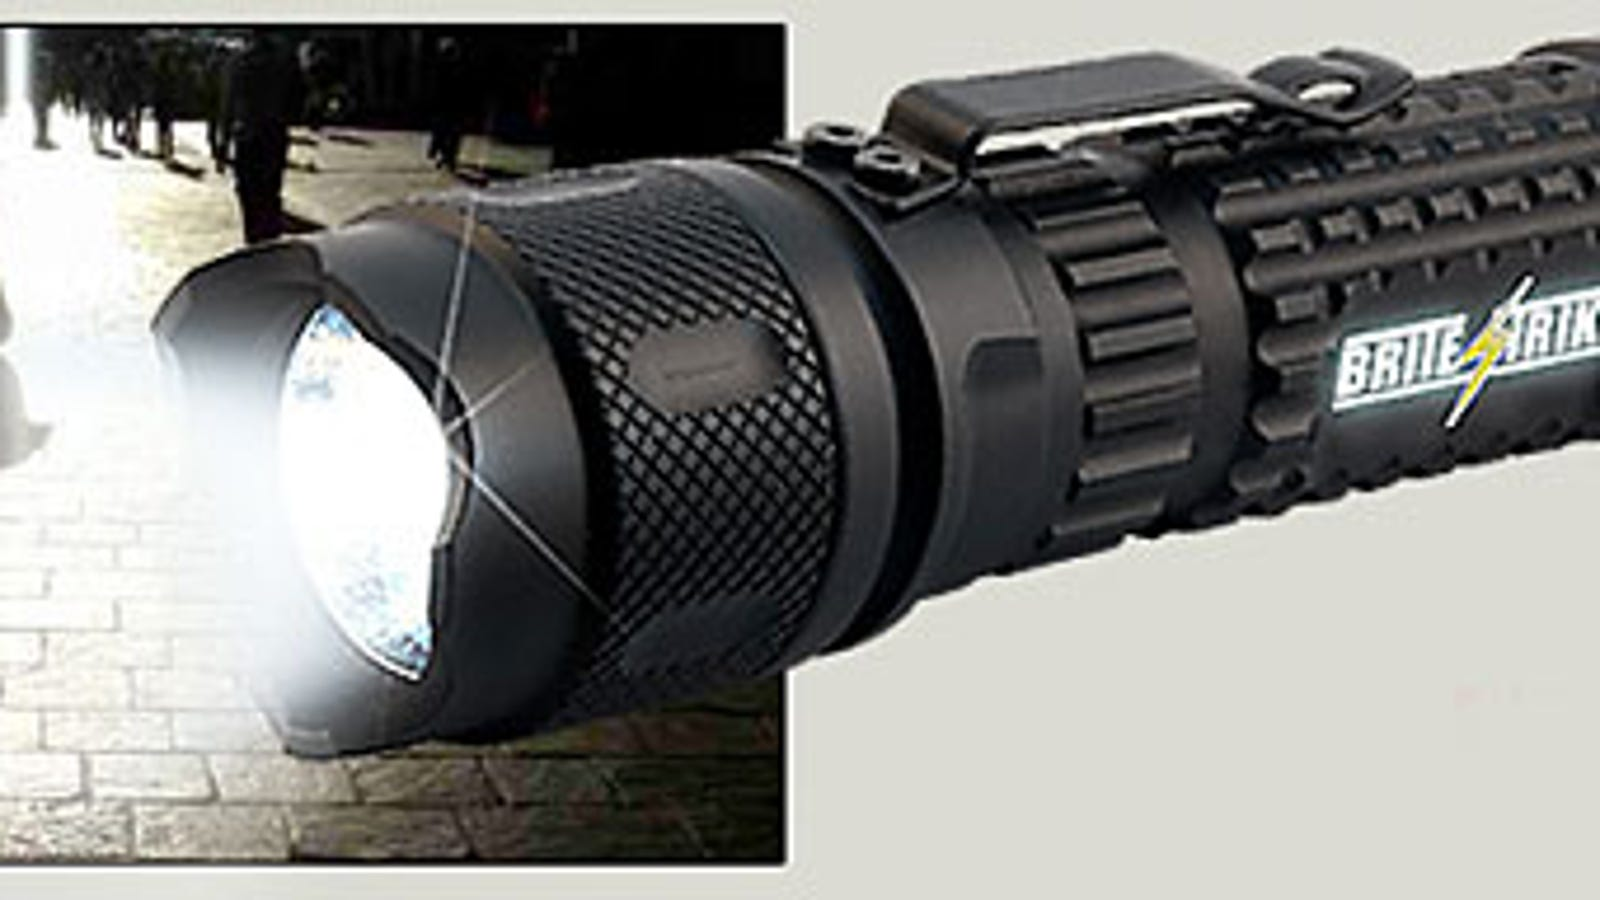 Brite Strike Protector Is One Badass Flashlight Single Cell Led